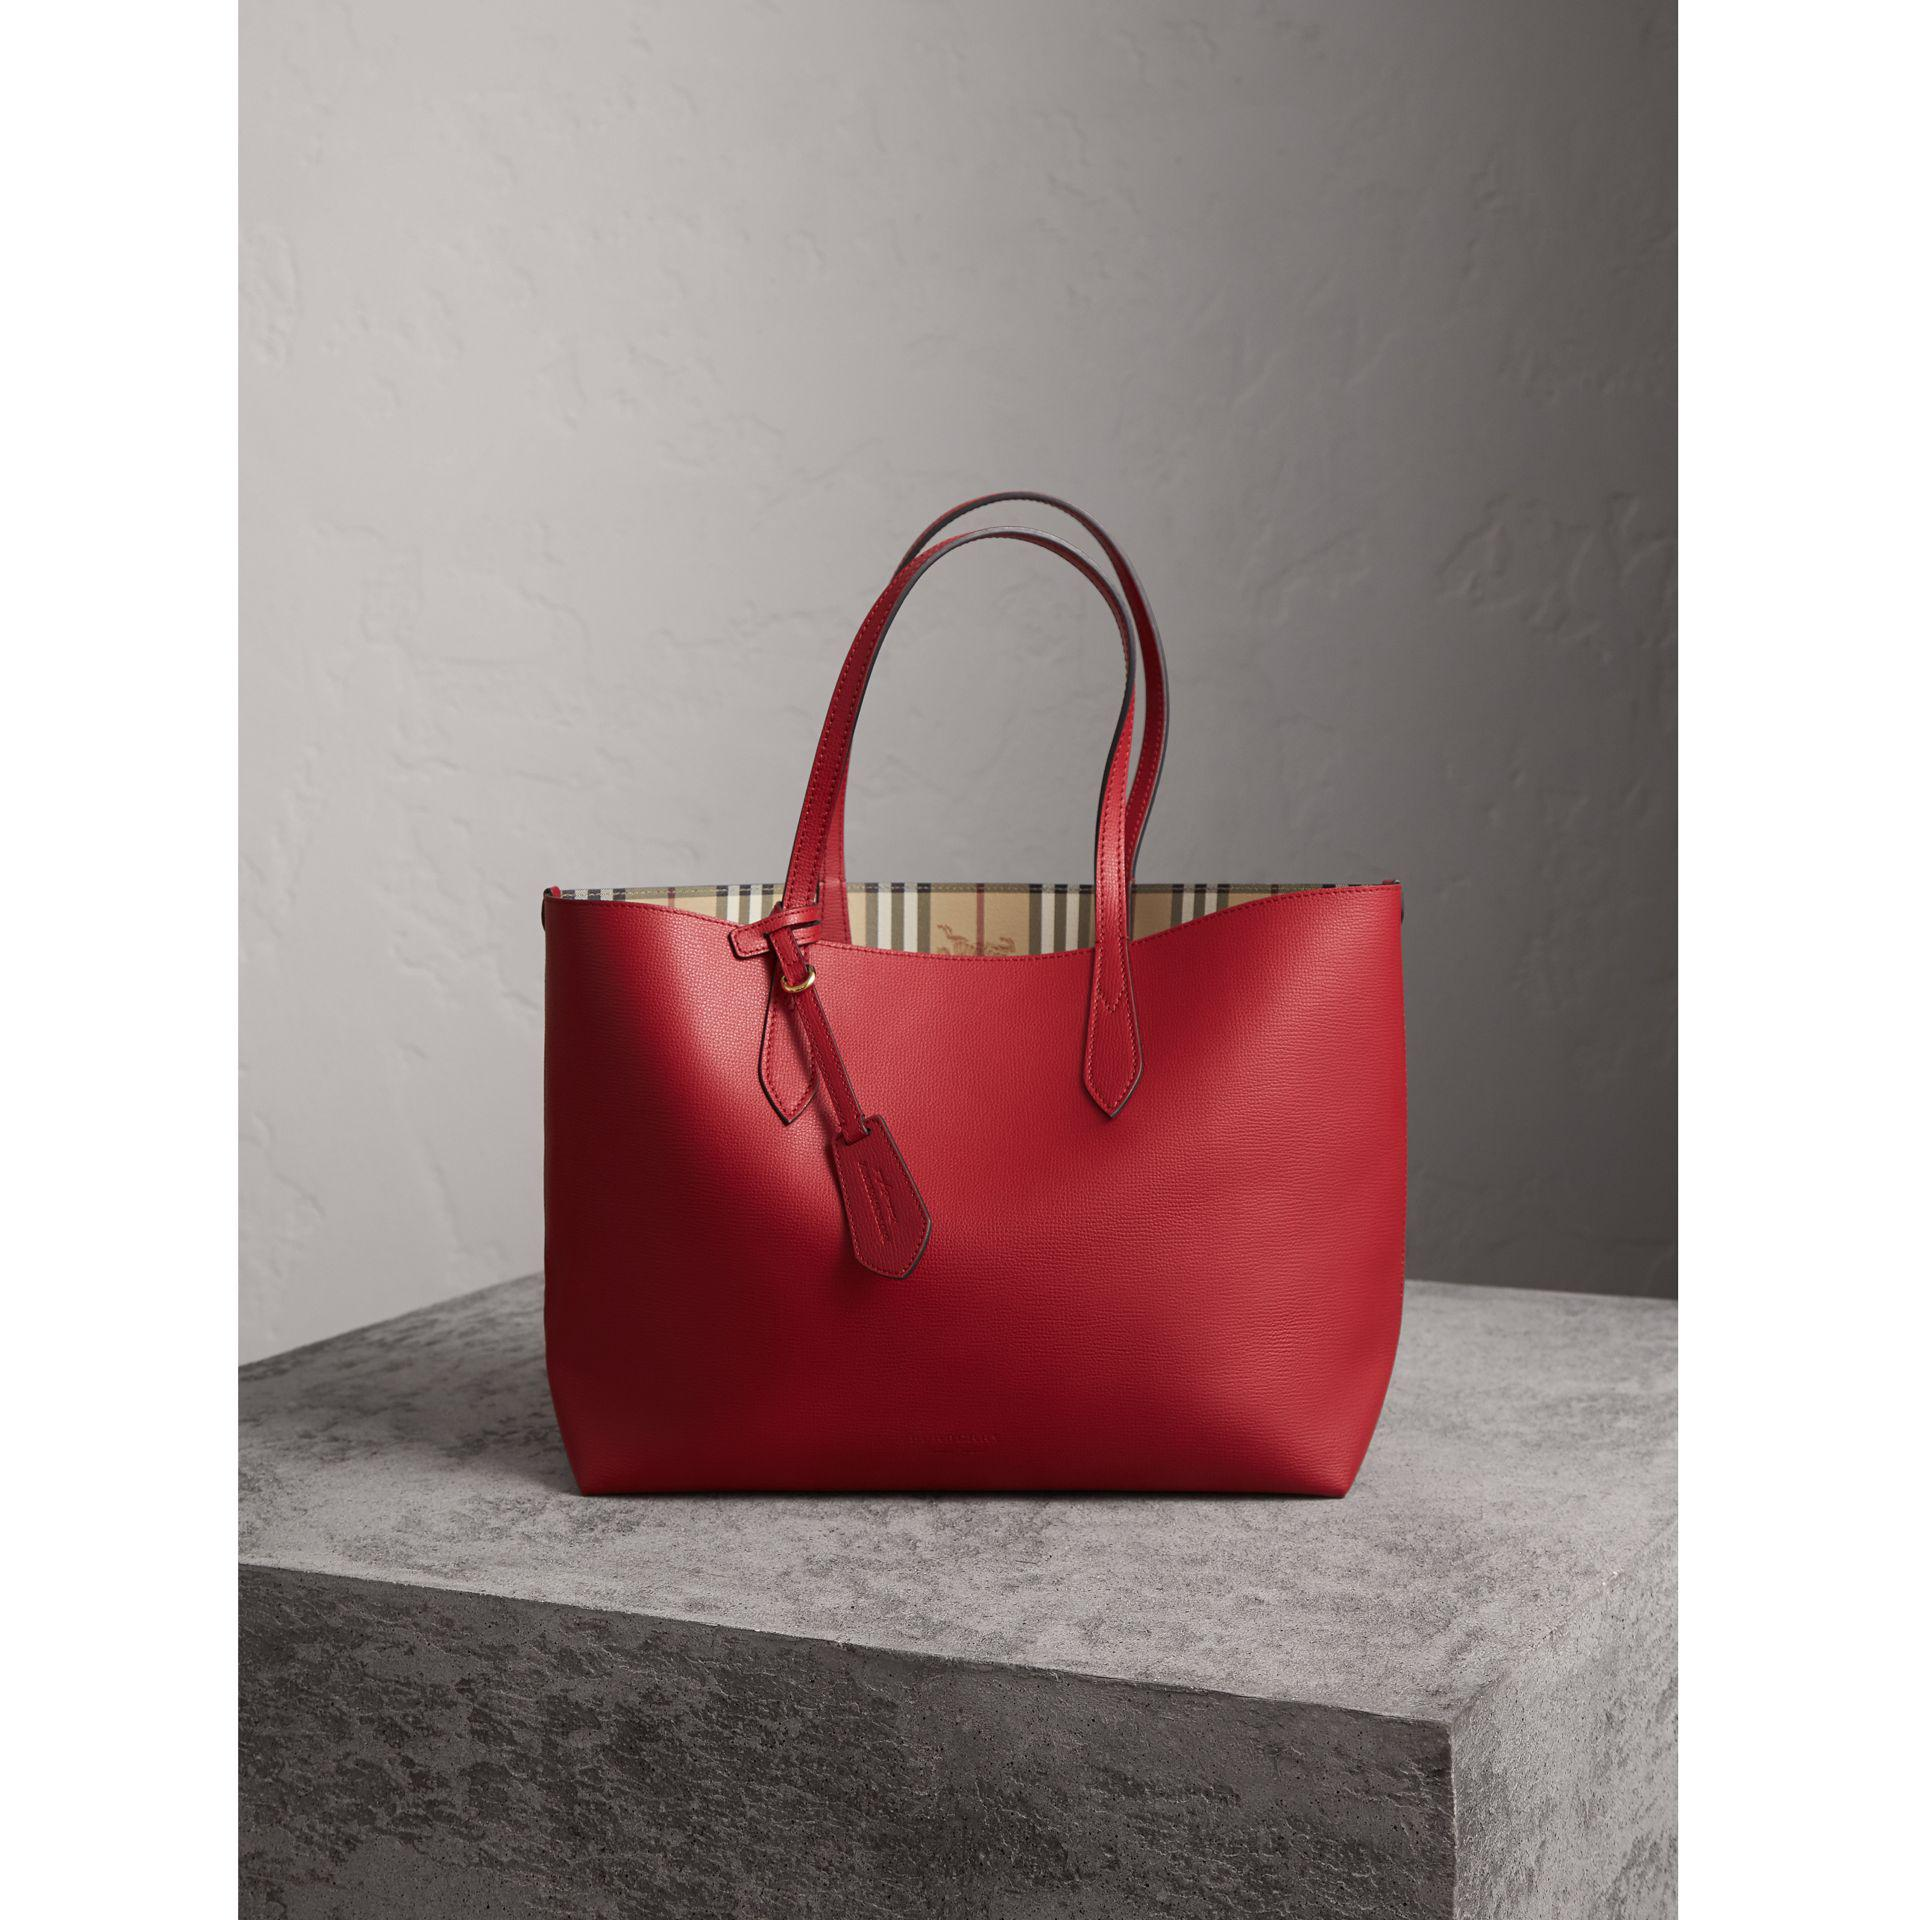 b73428fb20f5 Lyst - Burberry The Medium Reversible Tote In Haymarket Check And ...